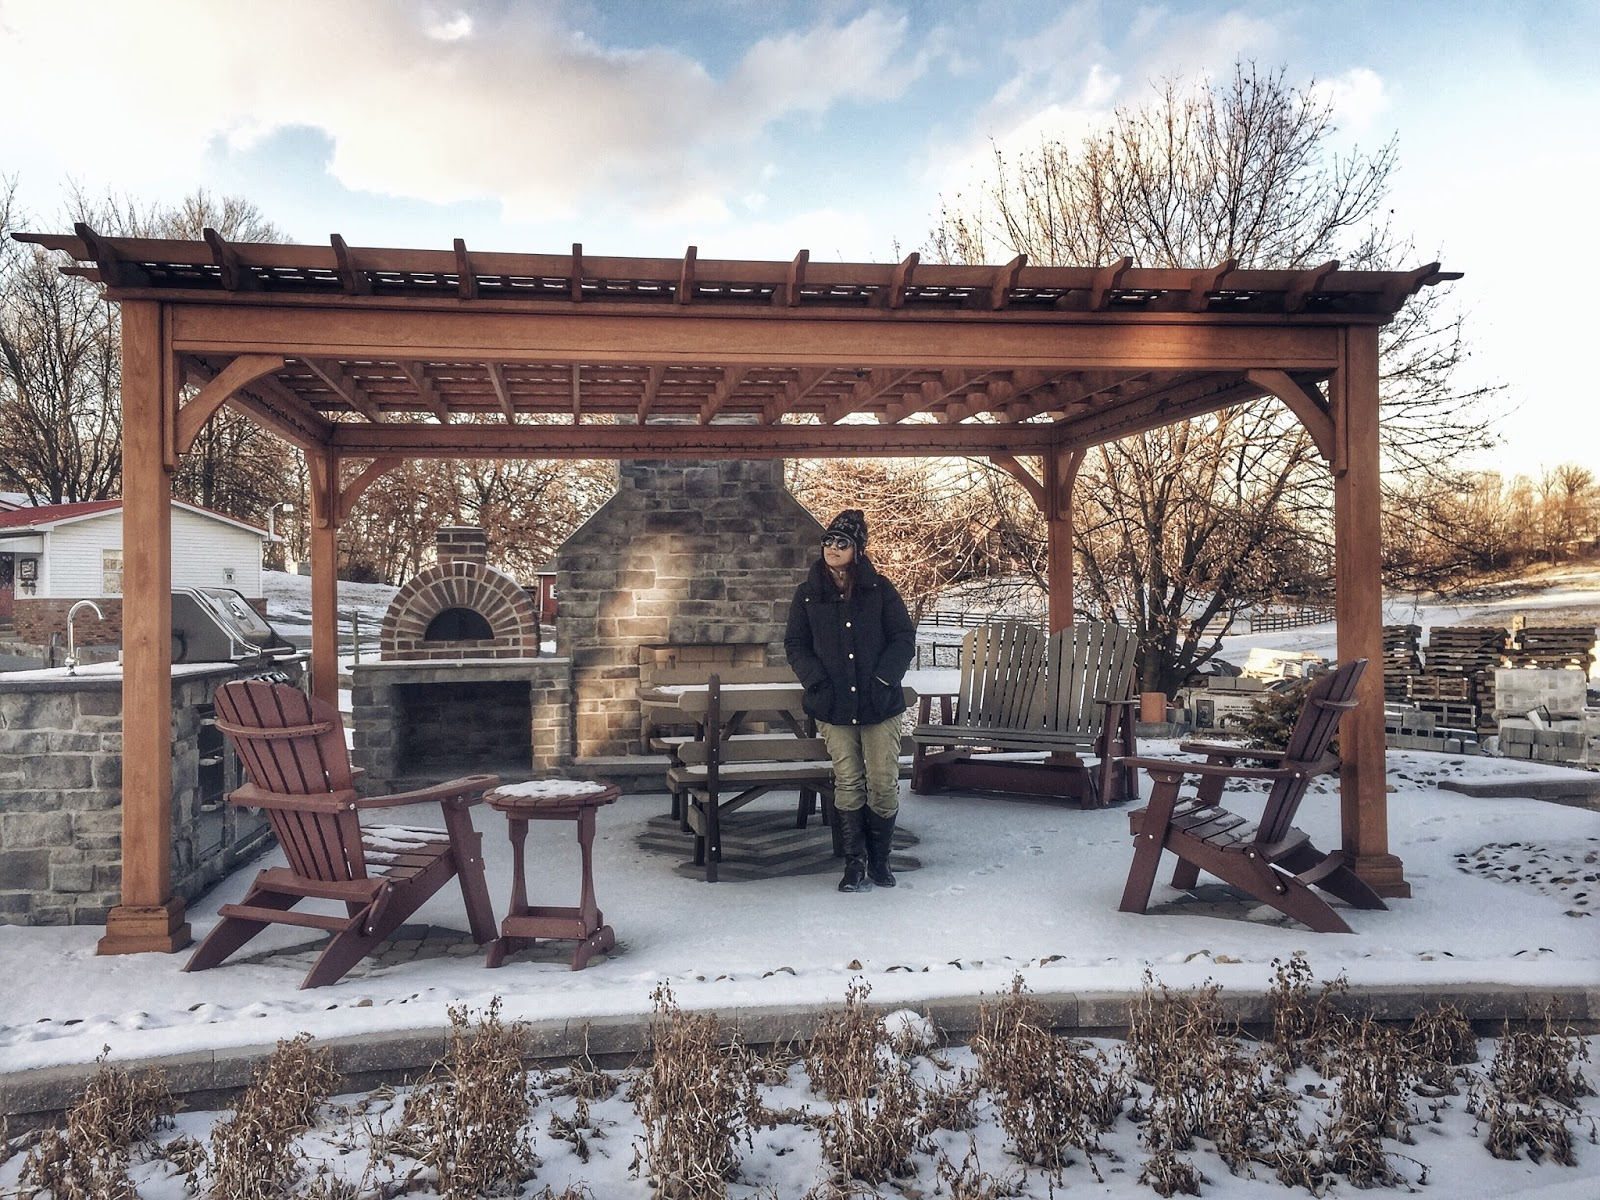 A new beginning-look of the day-pen mark park-pennsylvania- winterwonderland-winter-travel blogger-blogger style-los chuchis-travel bloggers-traveling-discovering-visit PA